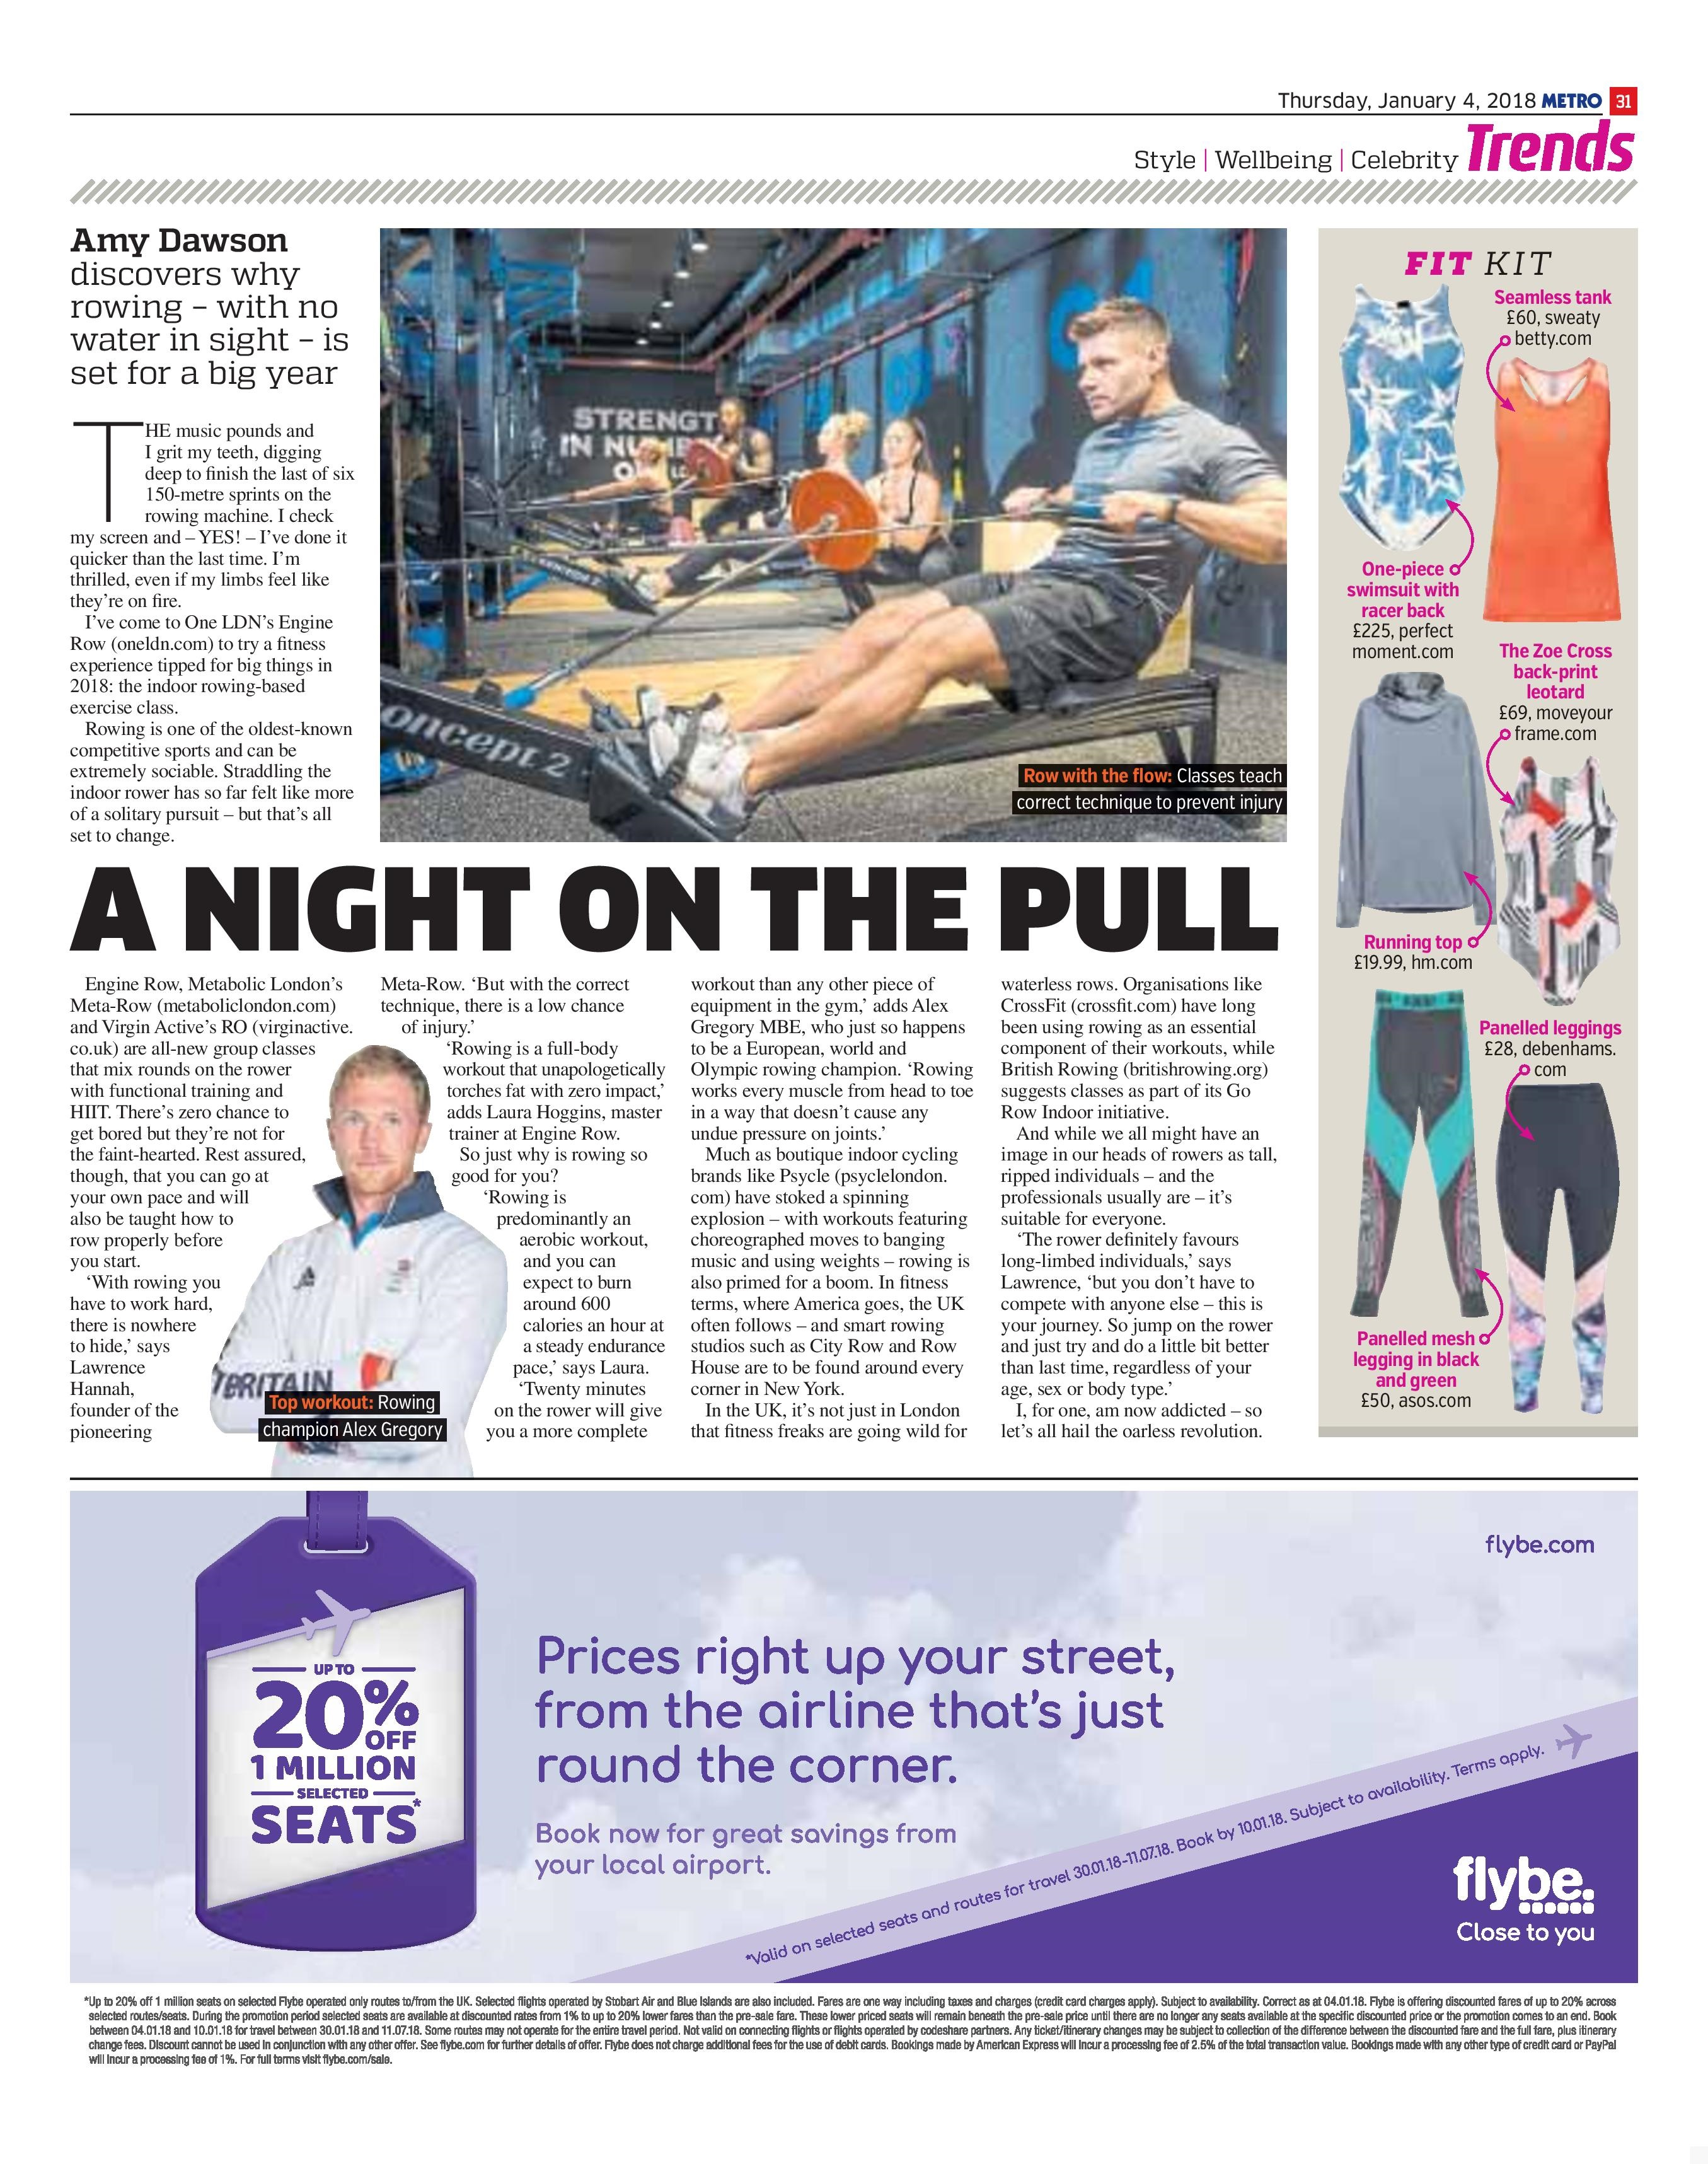 A Night On The Pull (Metro, 4th Jan 2018)